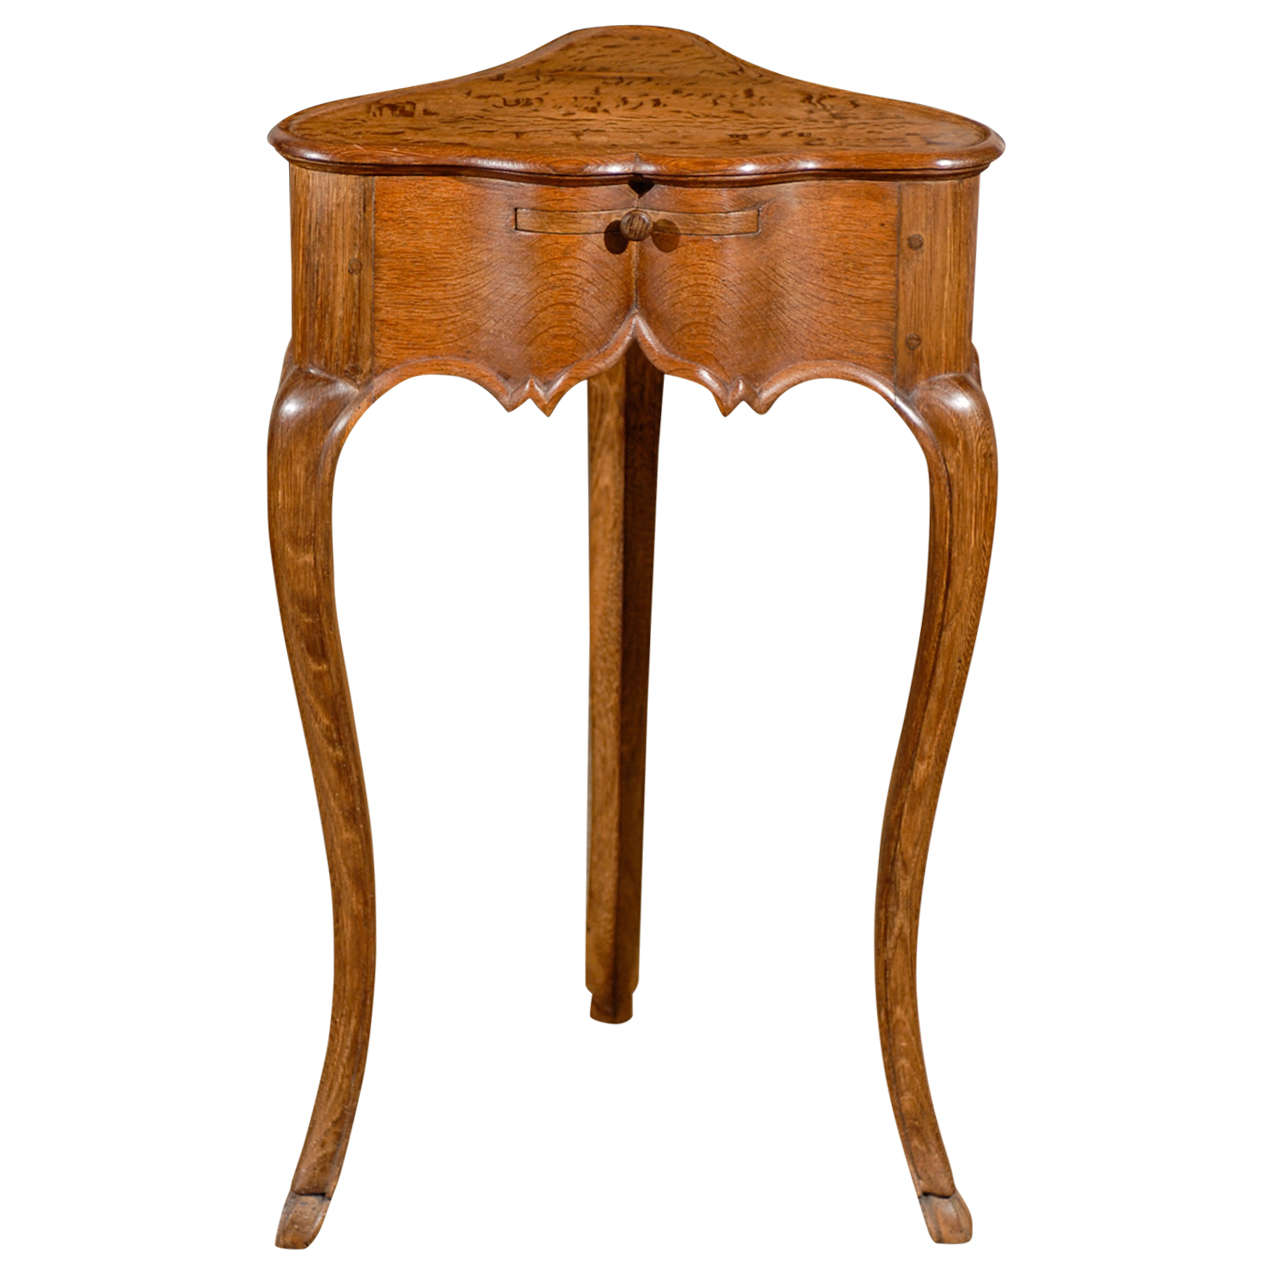 Period louis xv table at 1stdibs - Table louis xv ...